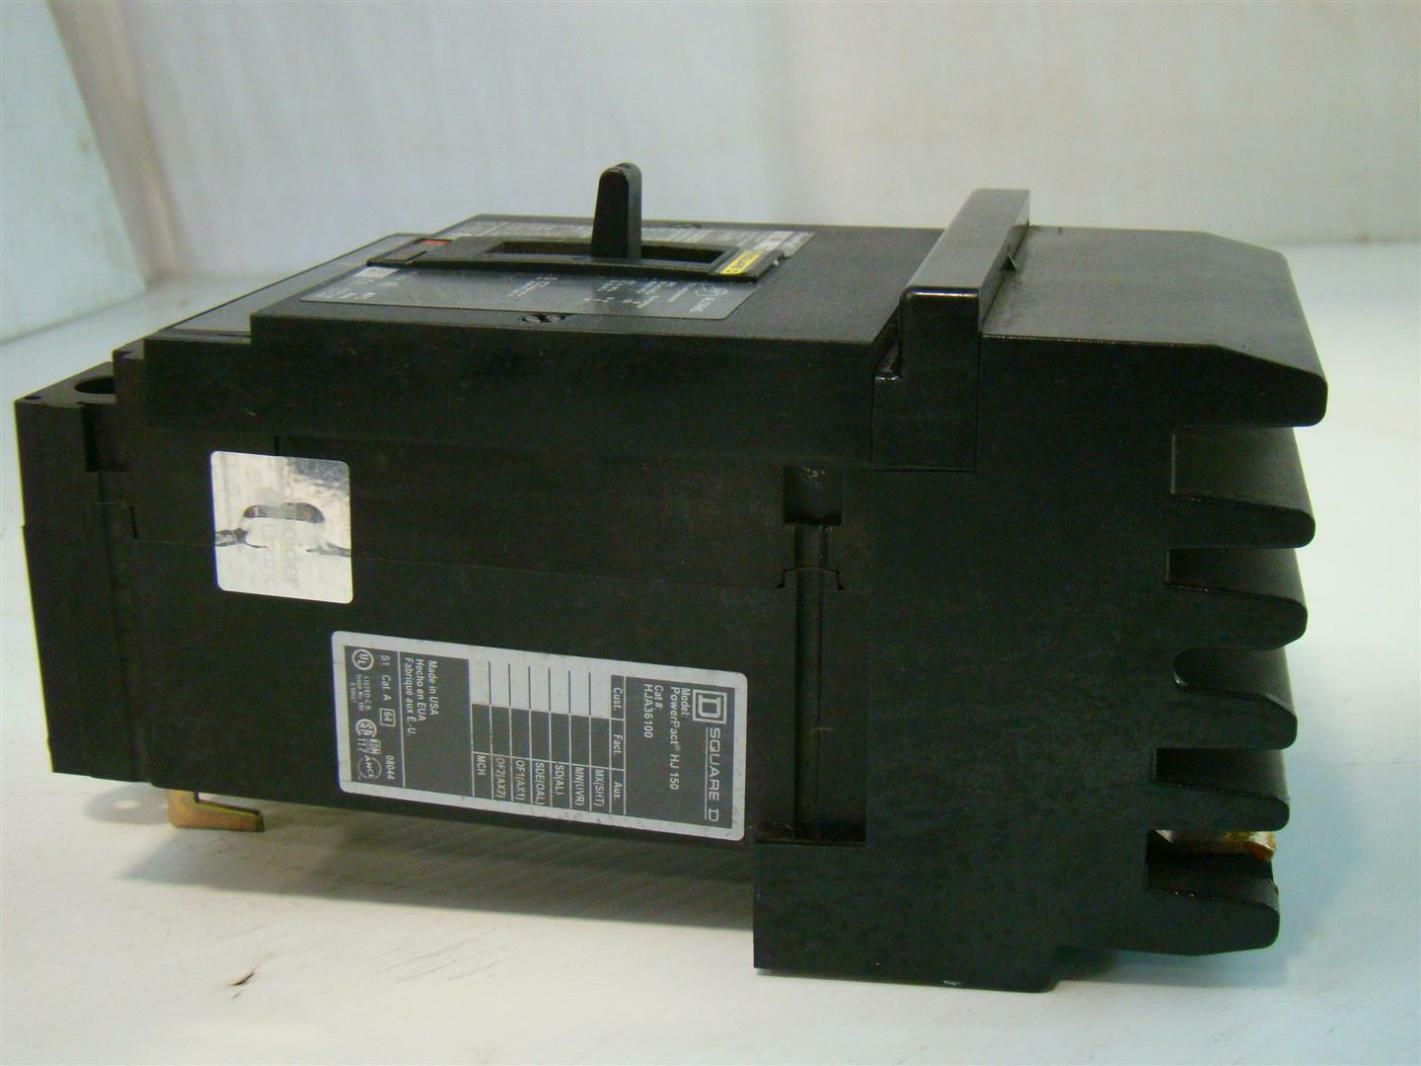 Square D I-Line Circuit Breaker HJ 150 100A PowerPact HJA36100 ...